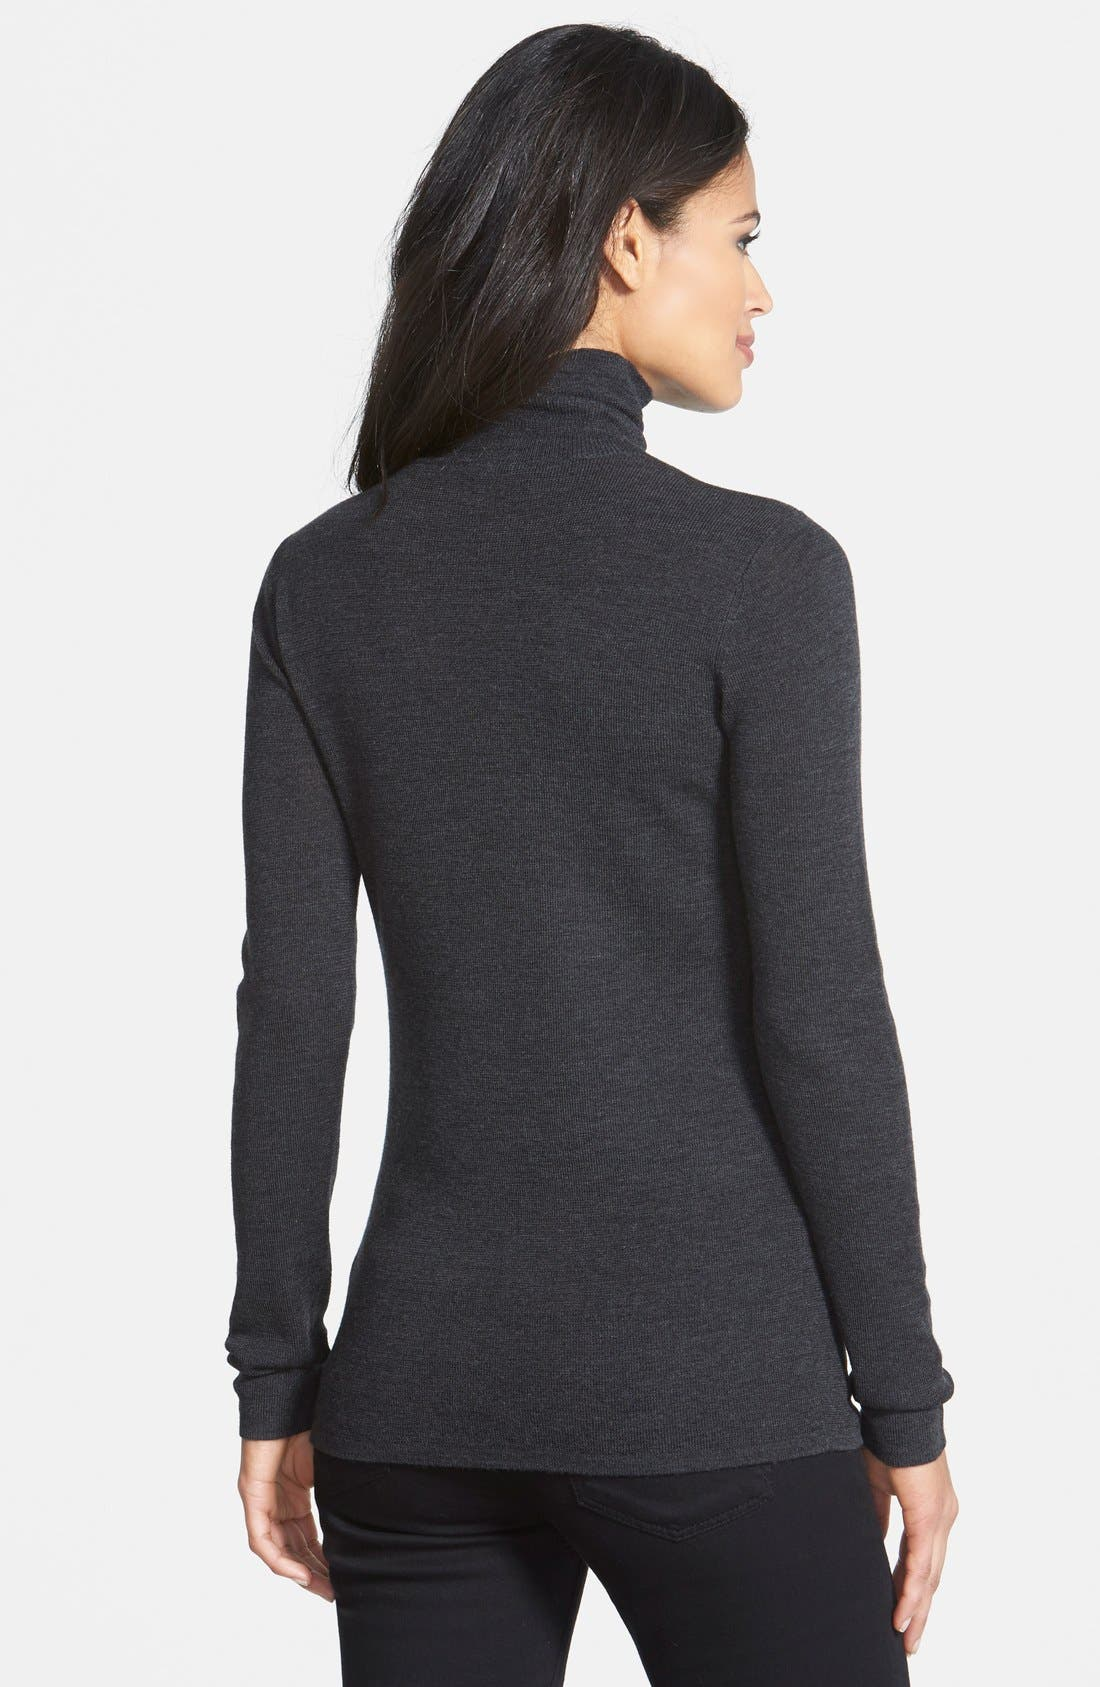 The Fisher Project Ultrafine Merino Turtleneck Sweater,                             Alternate thumbnail 8, color,